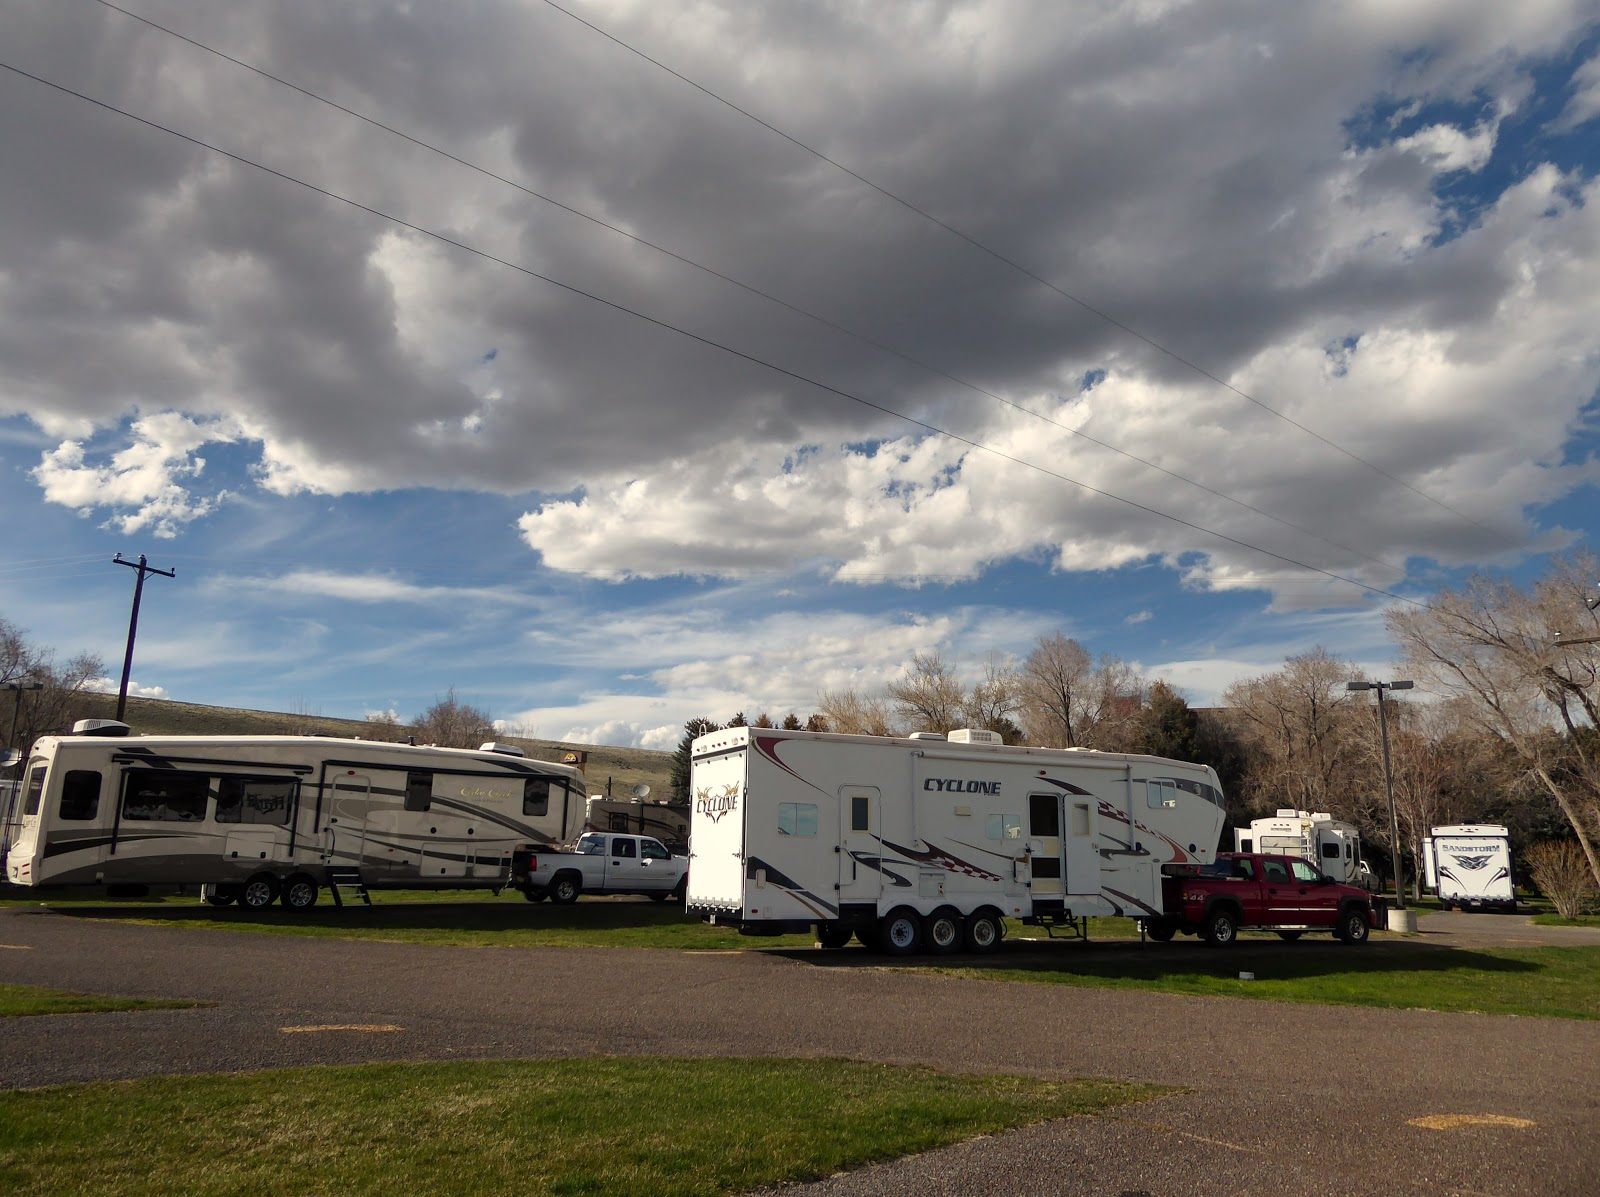 Kathy Amp Eric S Travels Pickett Quot S Rv Park Alamo Nv To